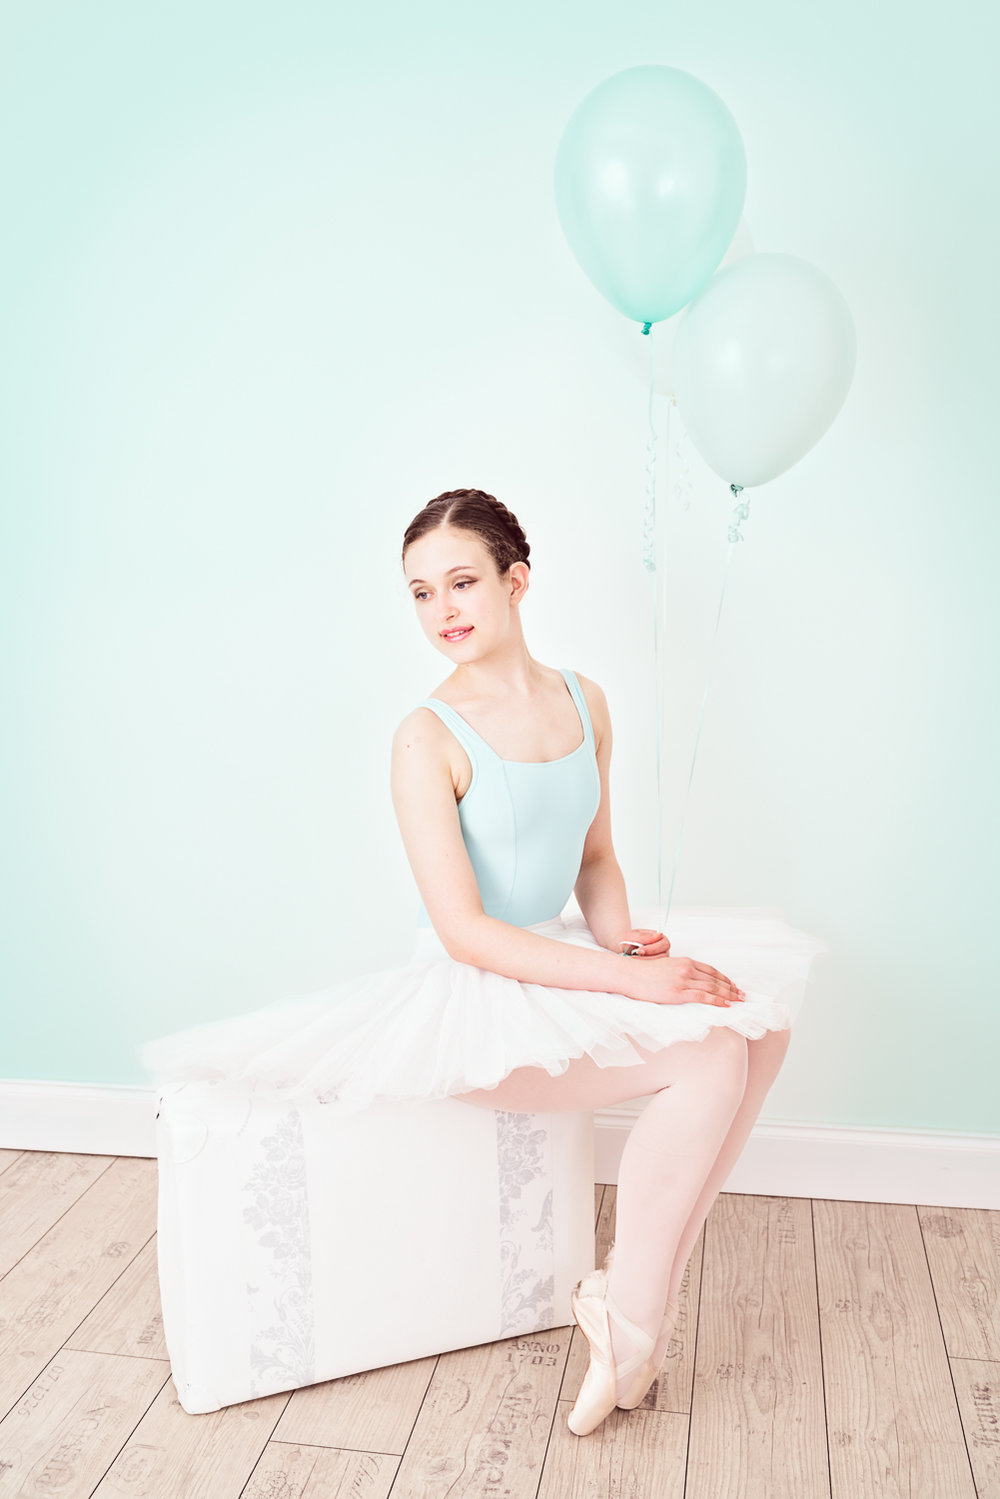 Chantelle_Ballet_Bernadette_Meyers-5542-Edit.jpg